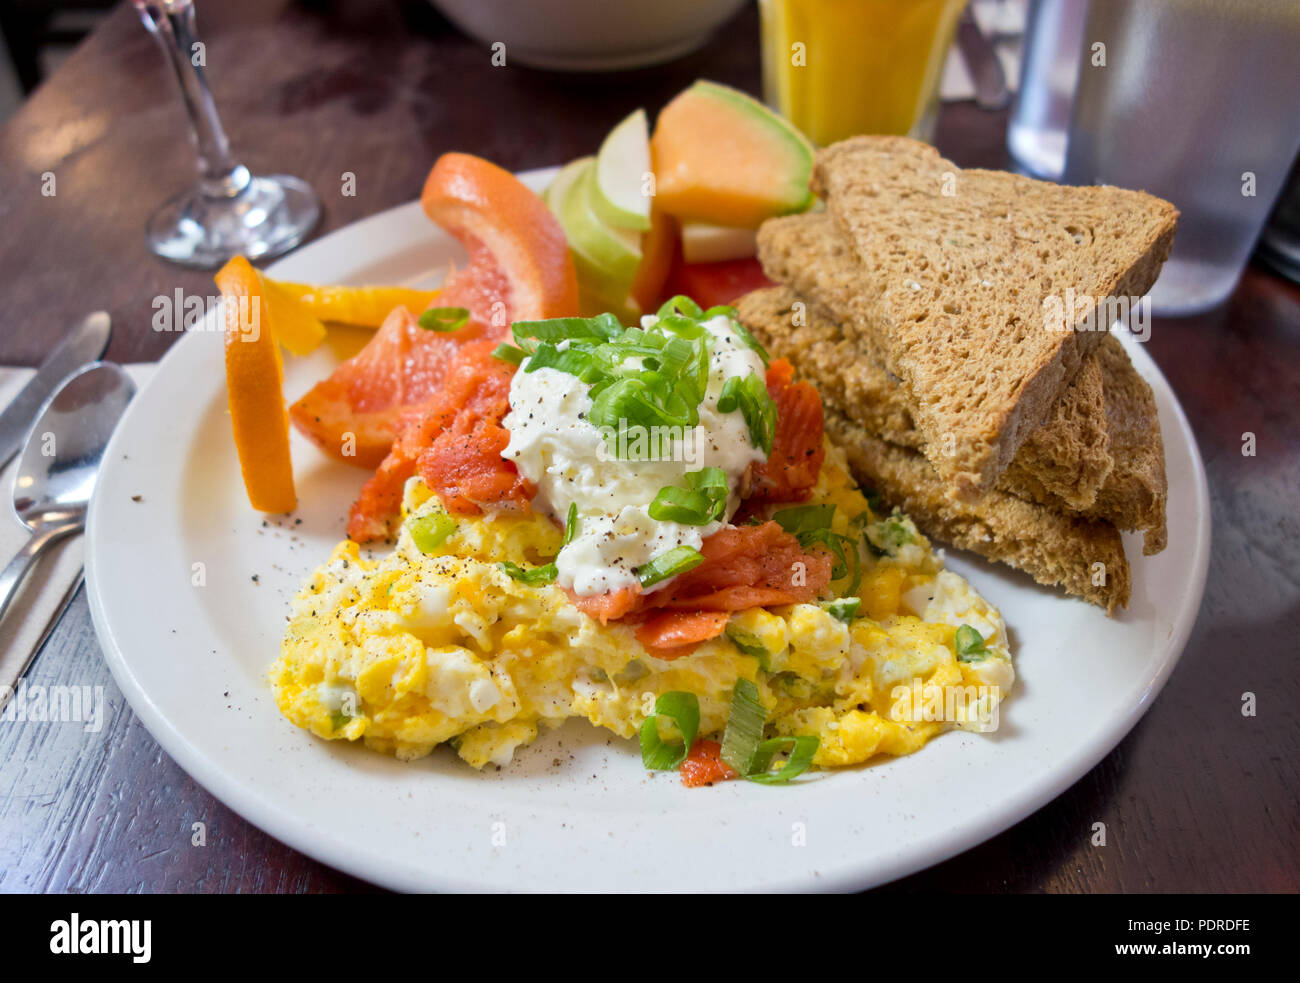 delicious-breakfast-with-scrambled-eggs-